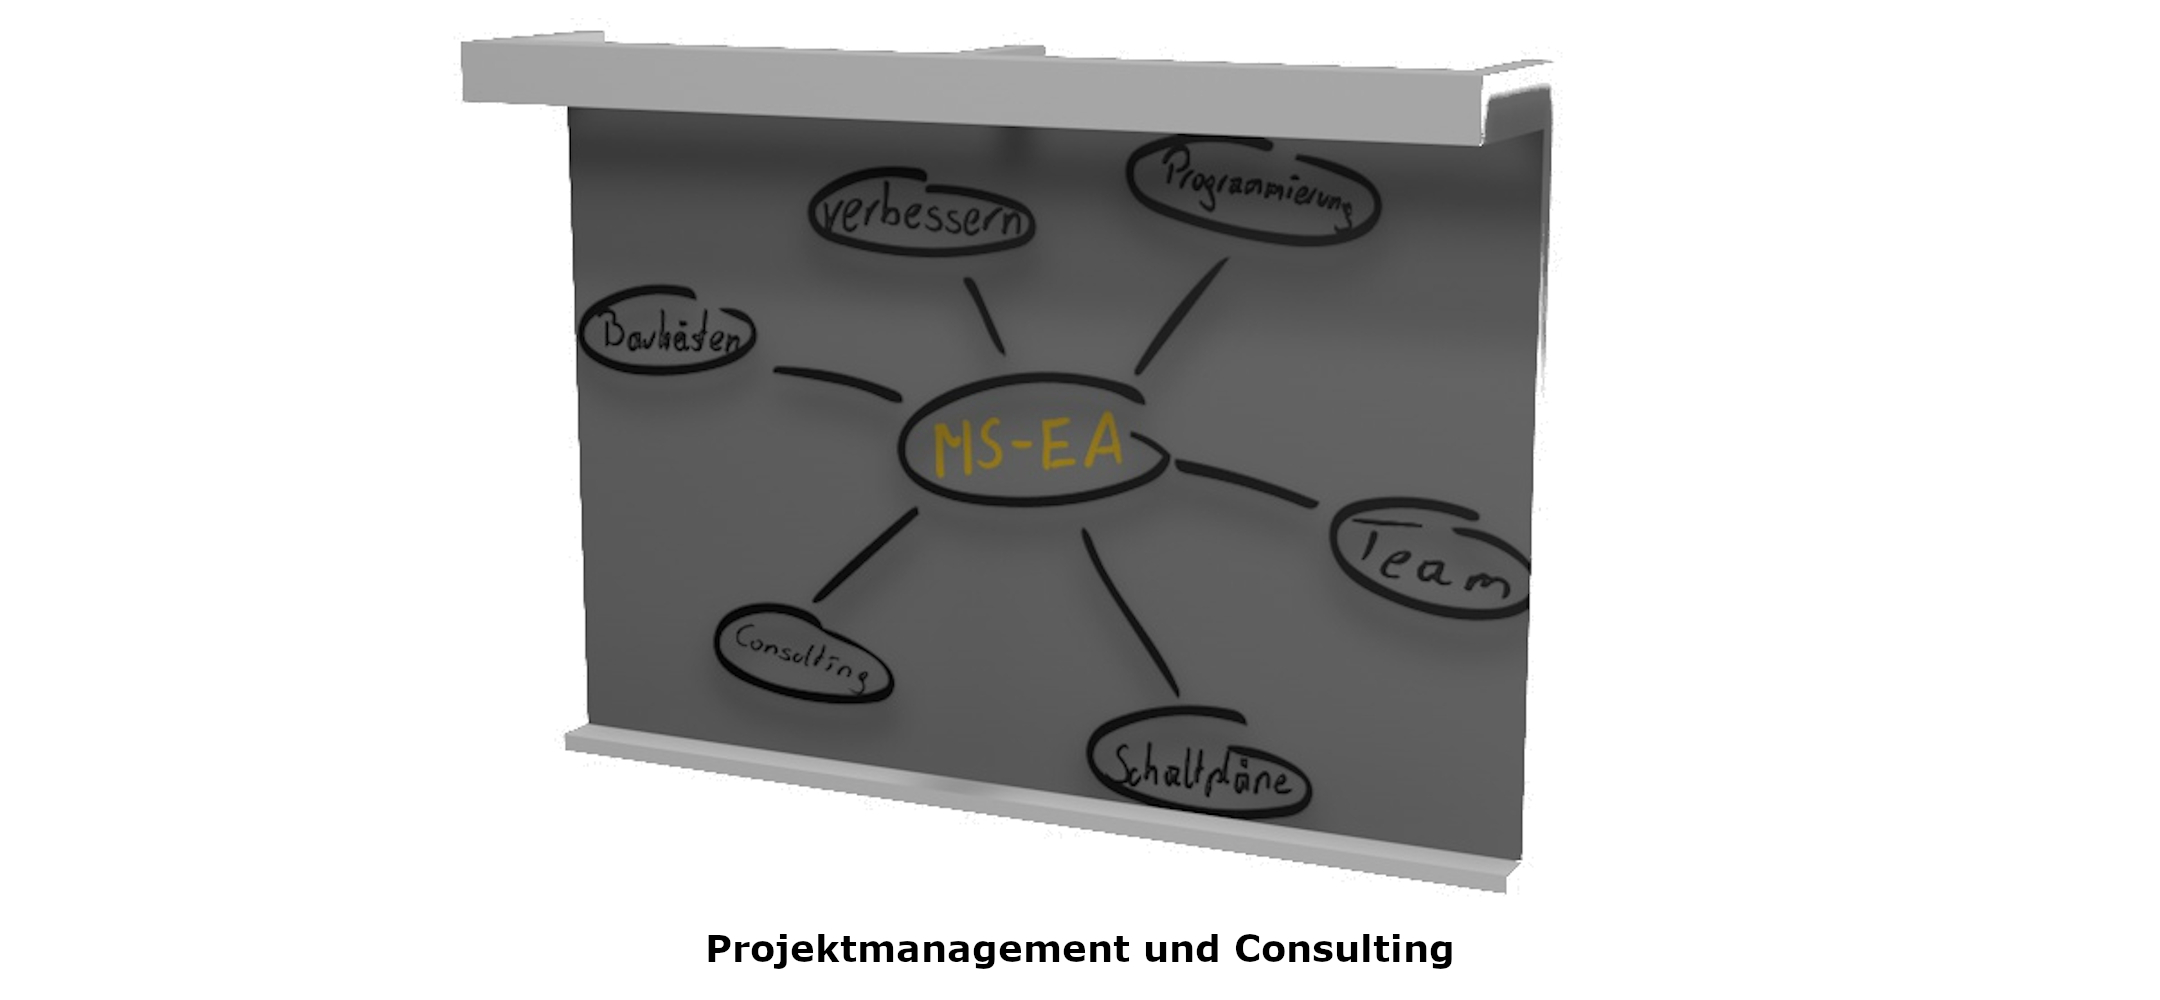 slider 001 Projektmanagement und Consulting